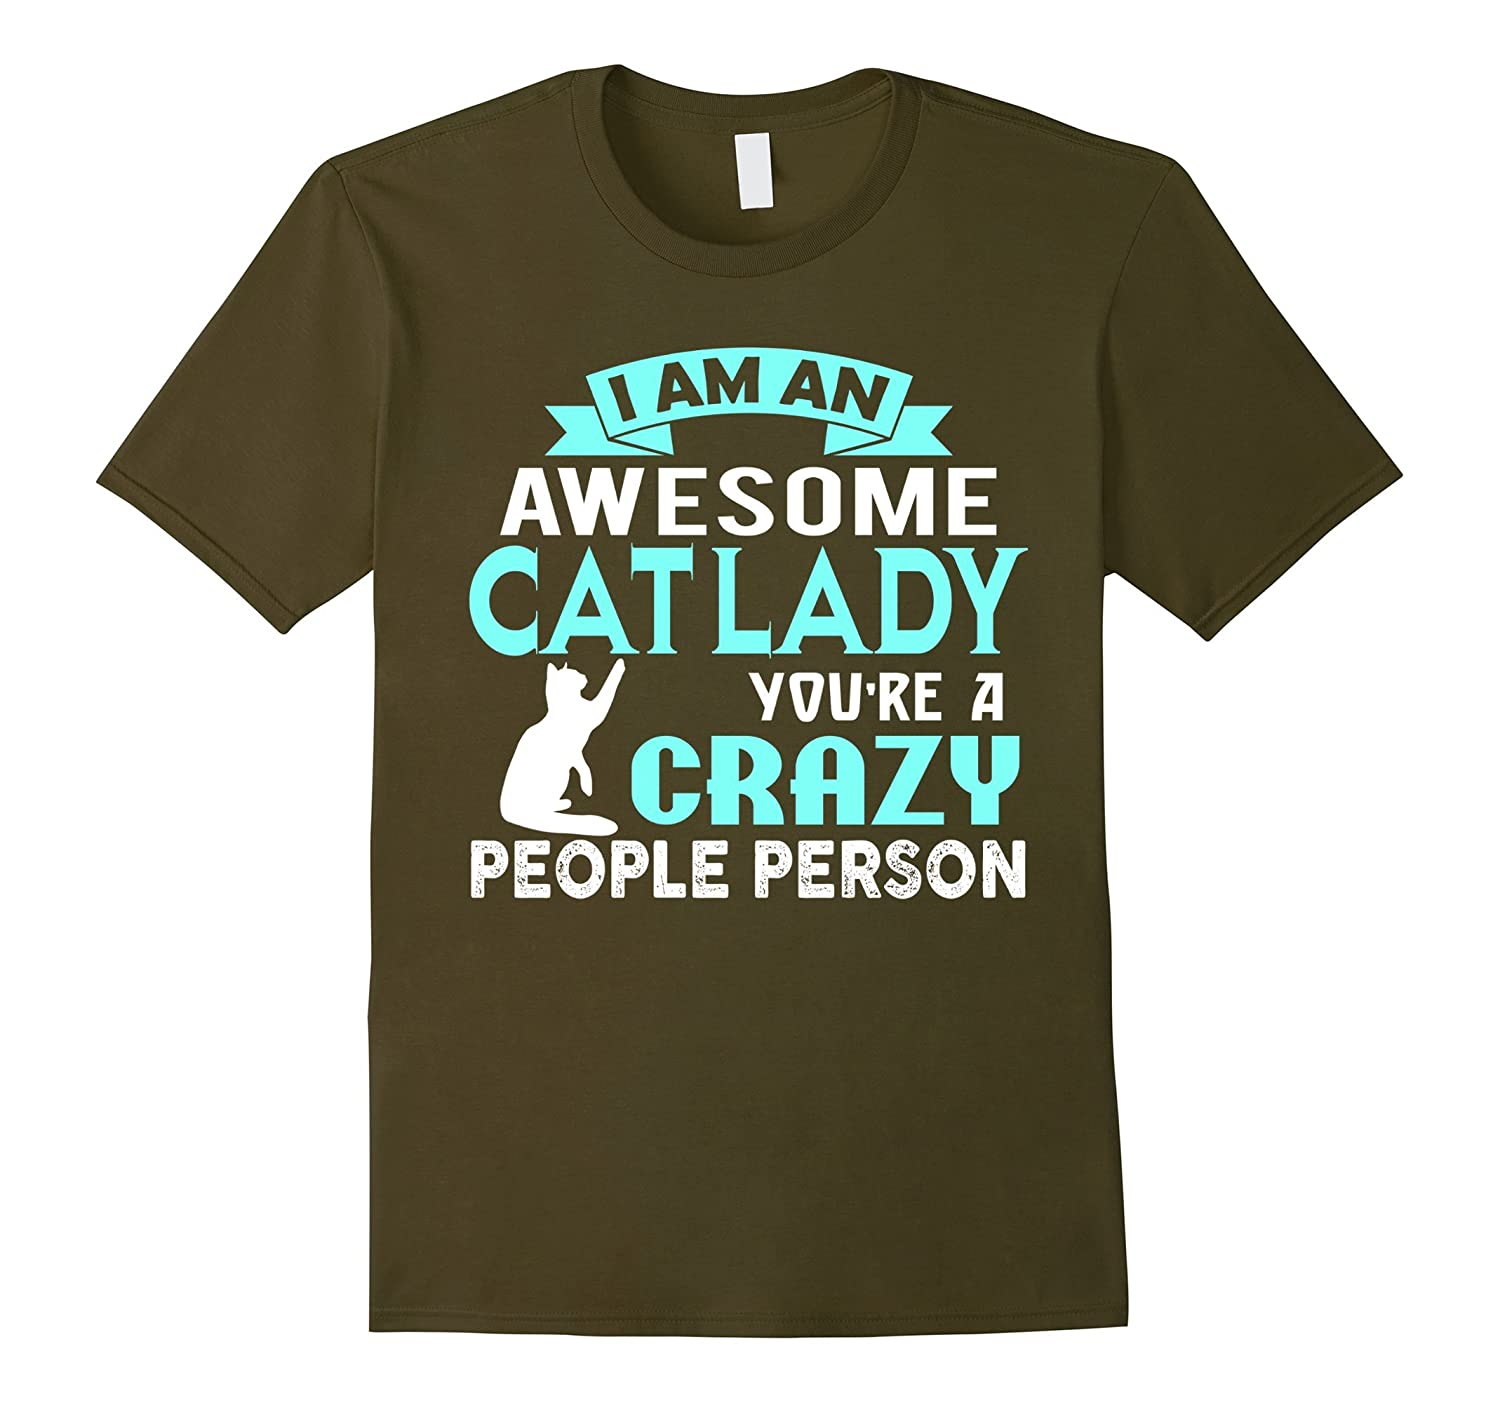 I Am An Awesome Cat Lady T Shirt, Awesome Cat Lady T Shirt-CL